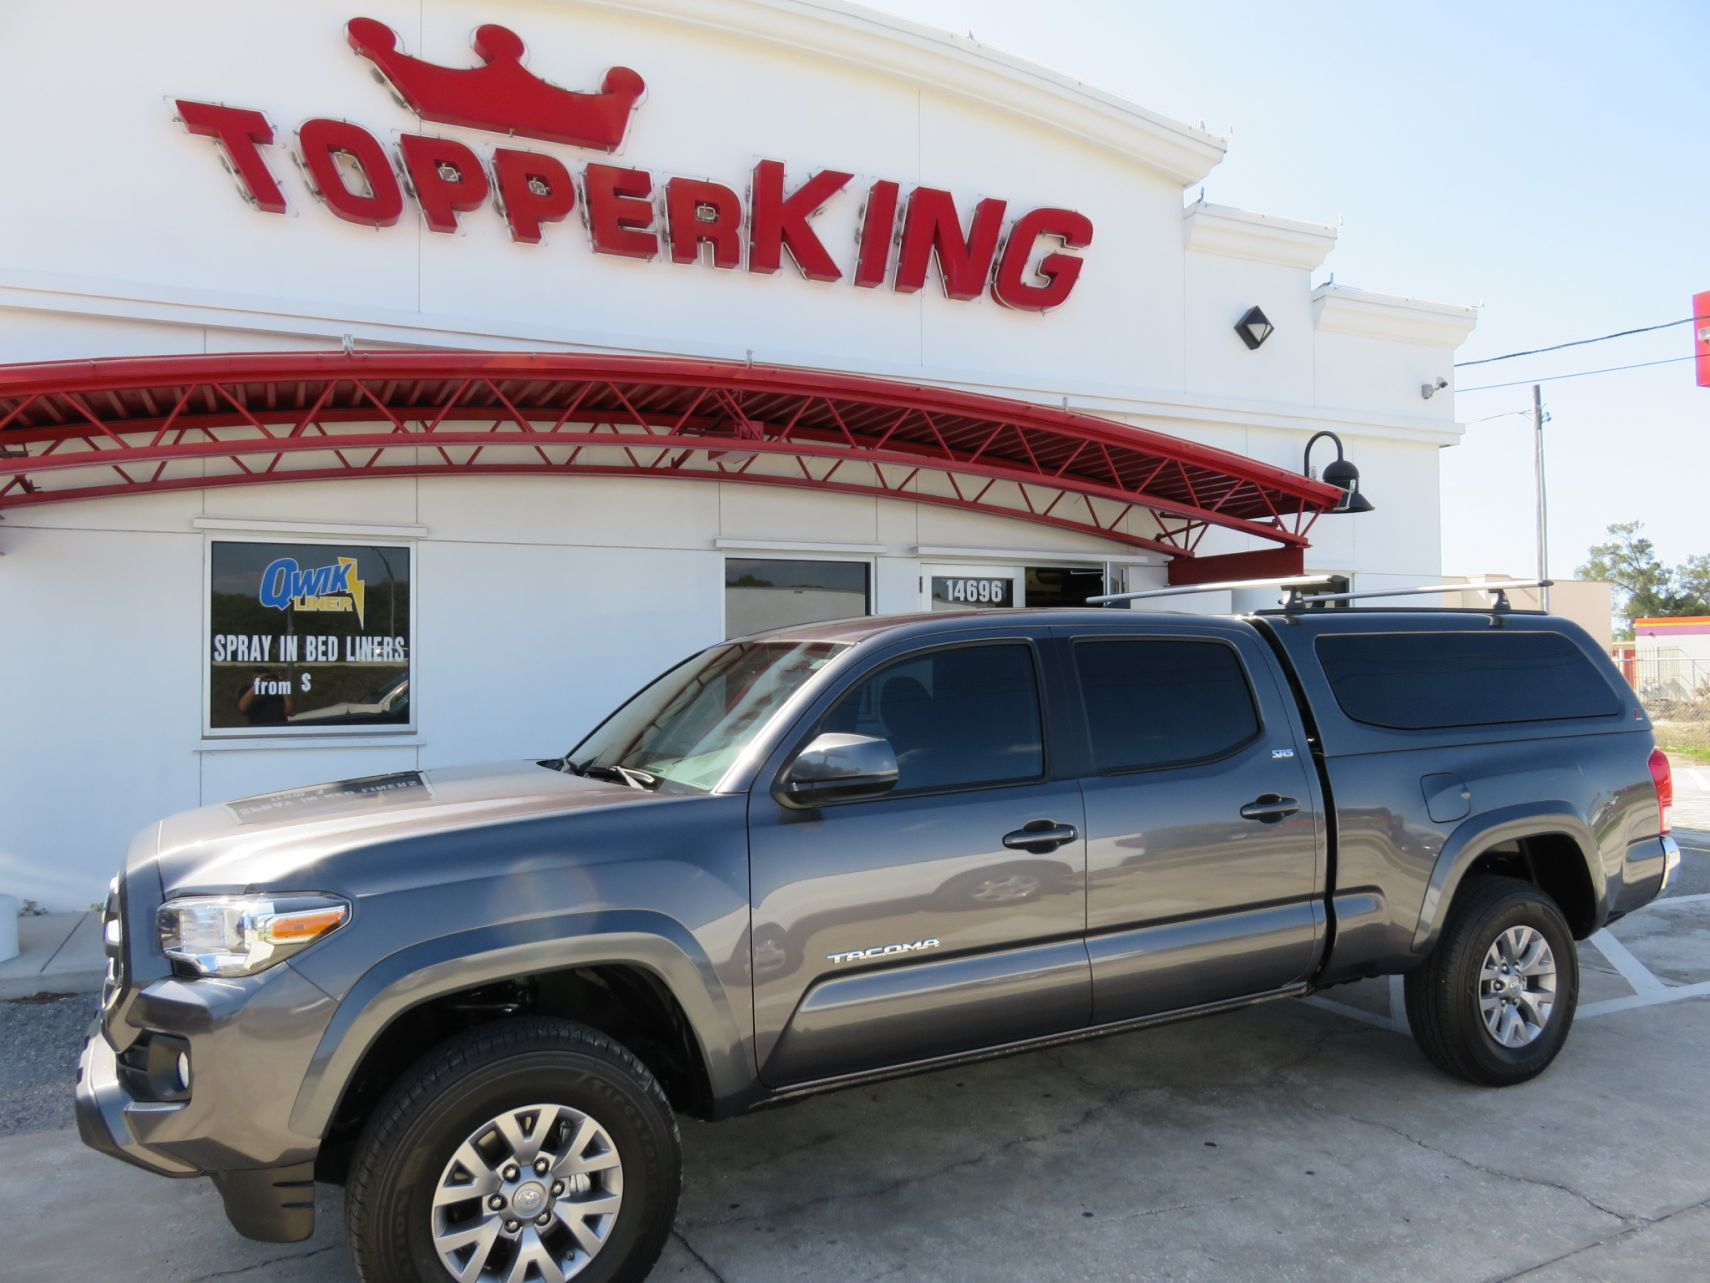 2018 Toyota Tacoma LEER 100XQ, Roof Racks, Tint by TopperKING in Brandon, FL 813-689-2449 or Clearwater, FL 727-530-9066. Call today to start on your truck!